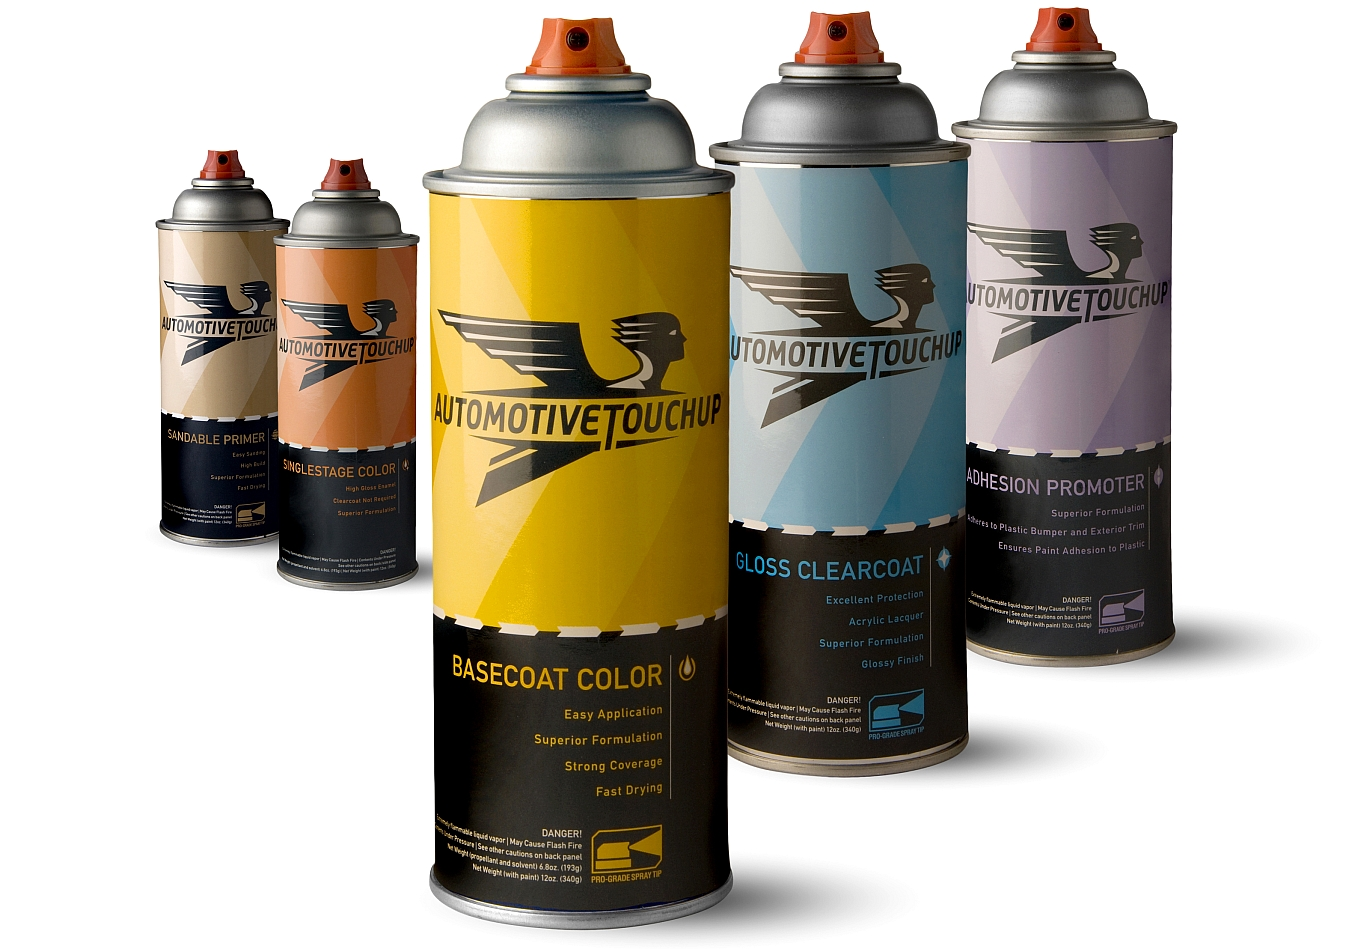 AutomotiveTouchup Aerosols